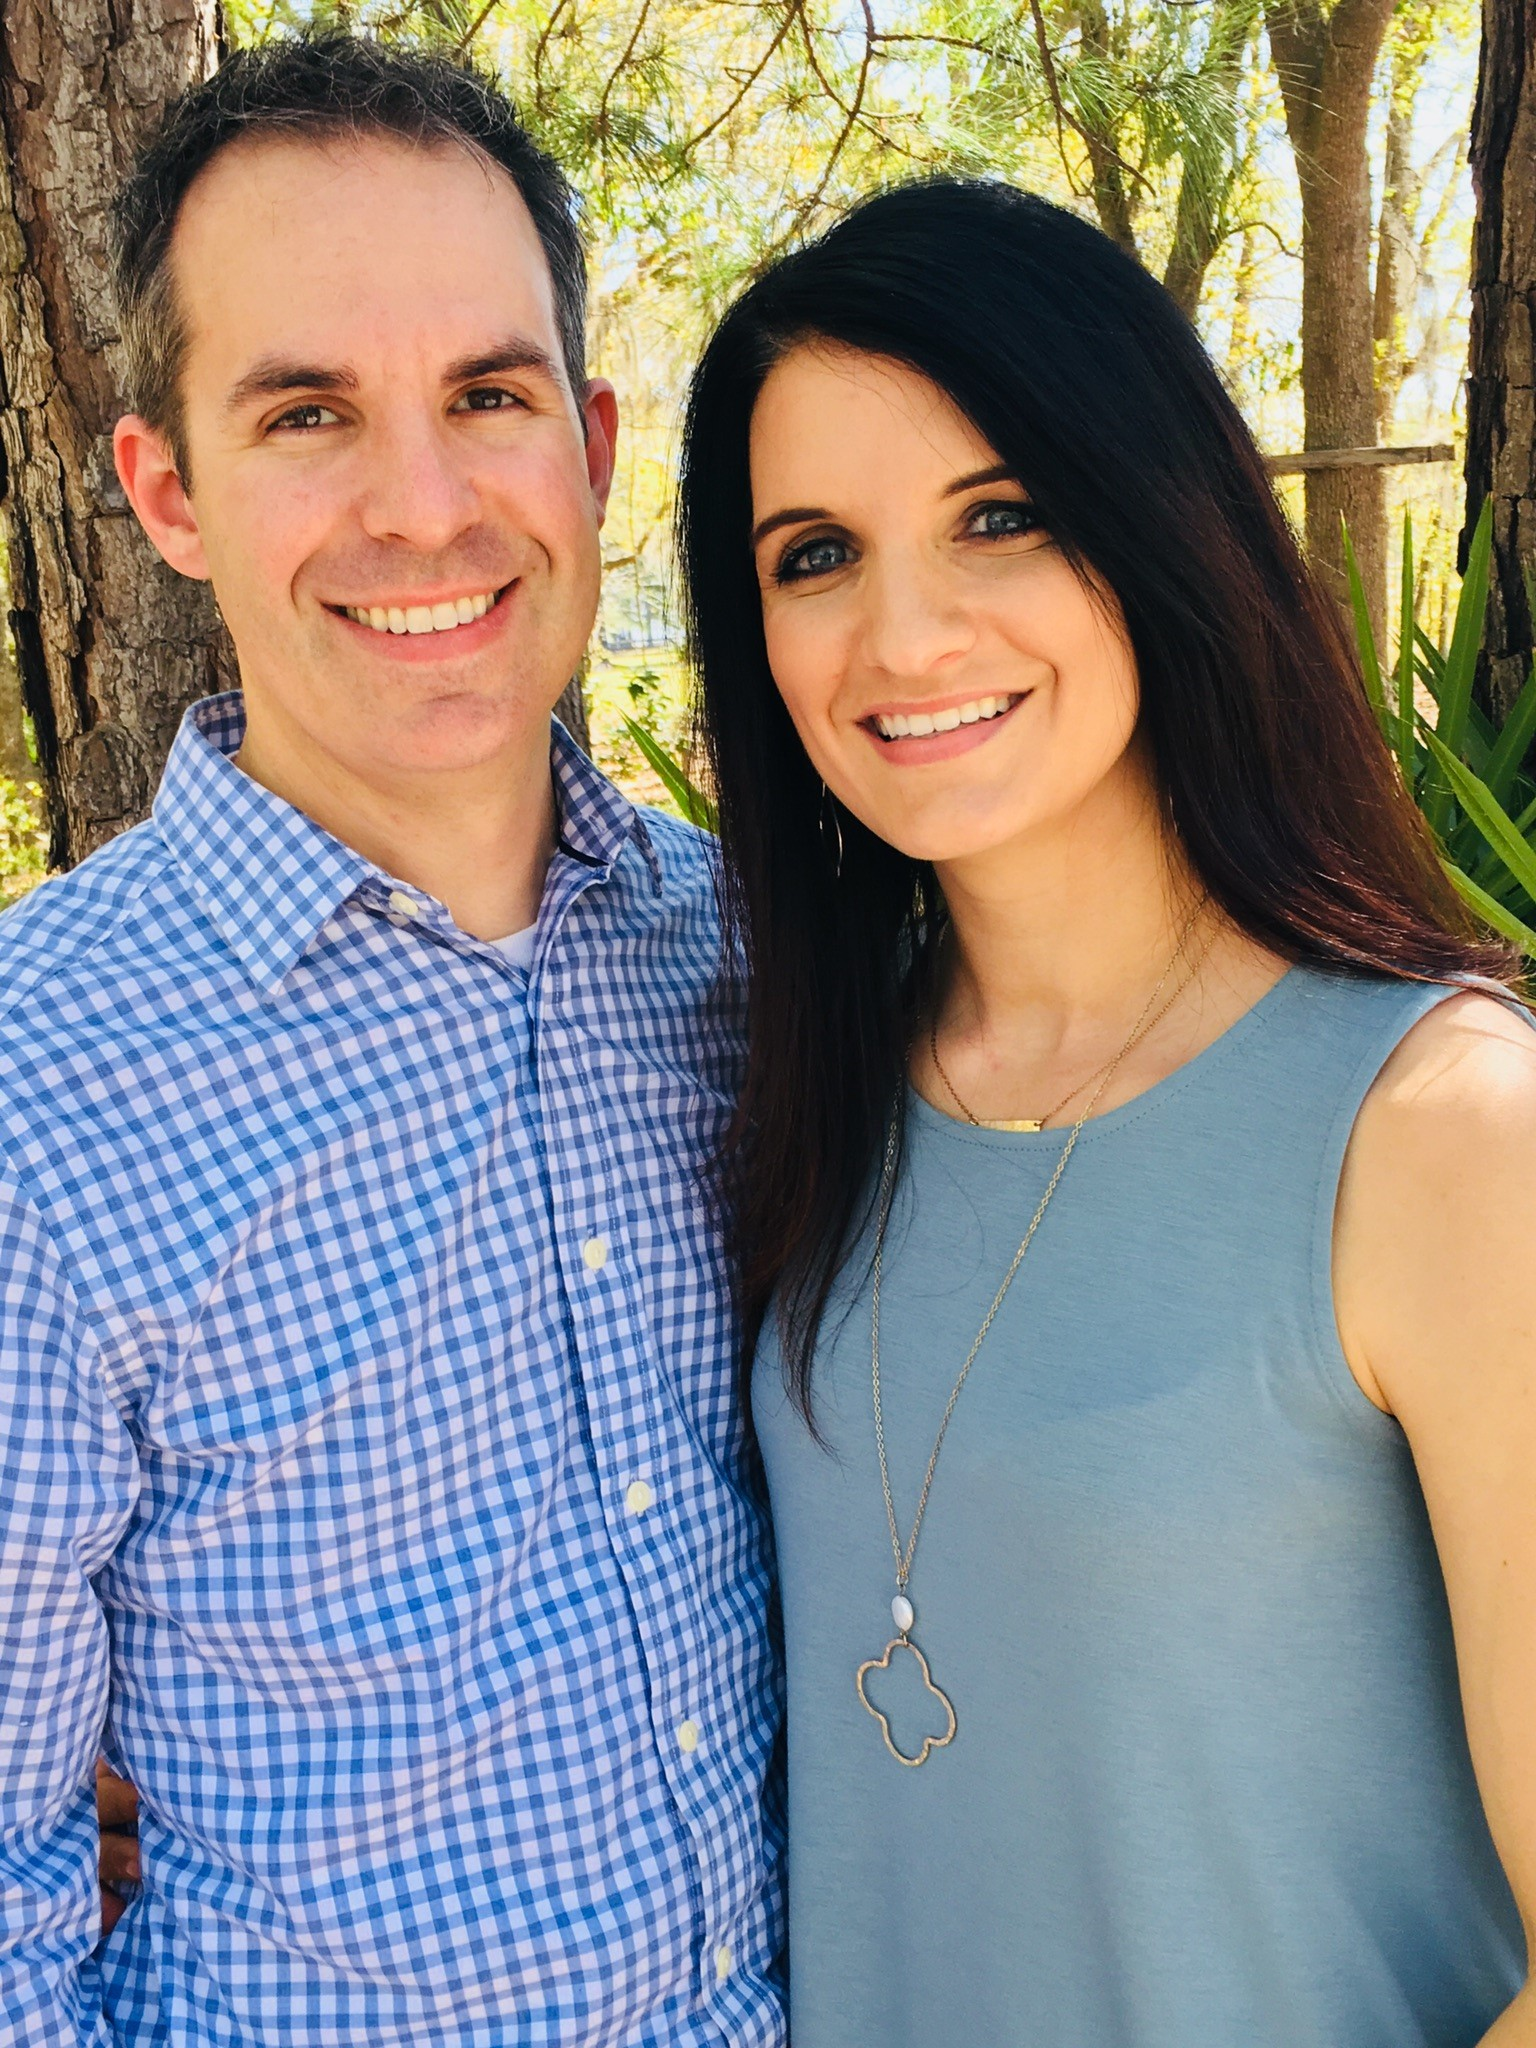 Contemporary Worship Leaders - Brian and Stacey Morgan